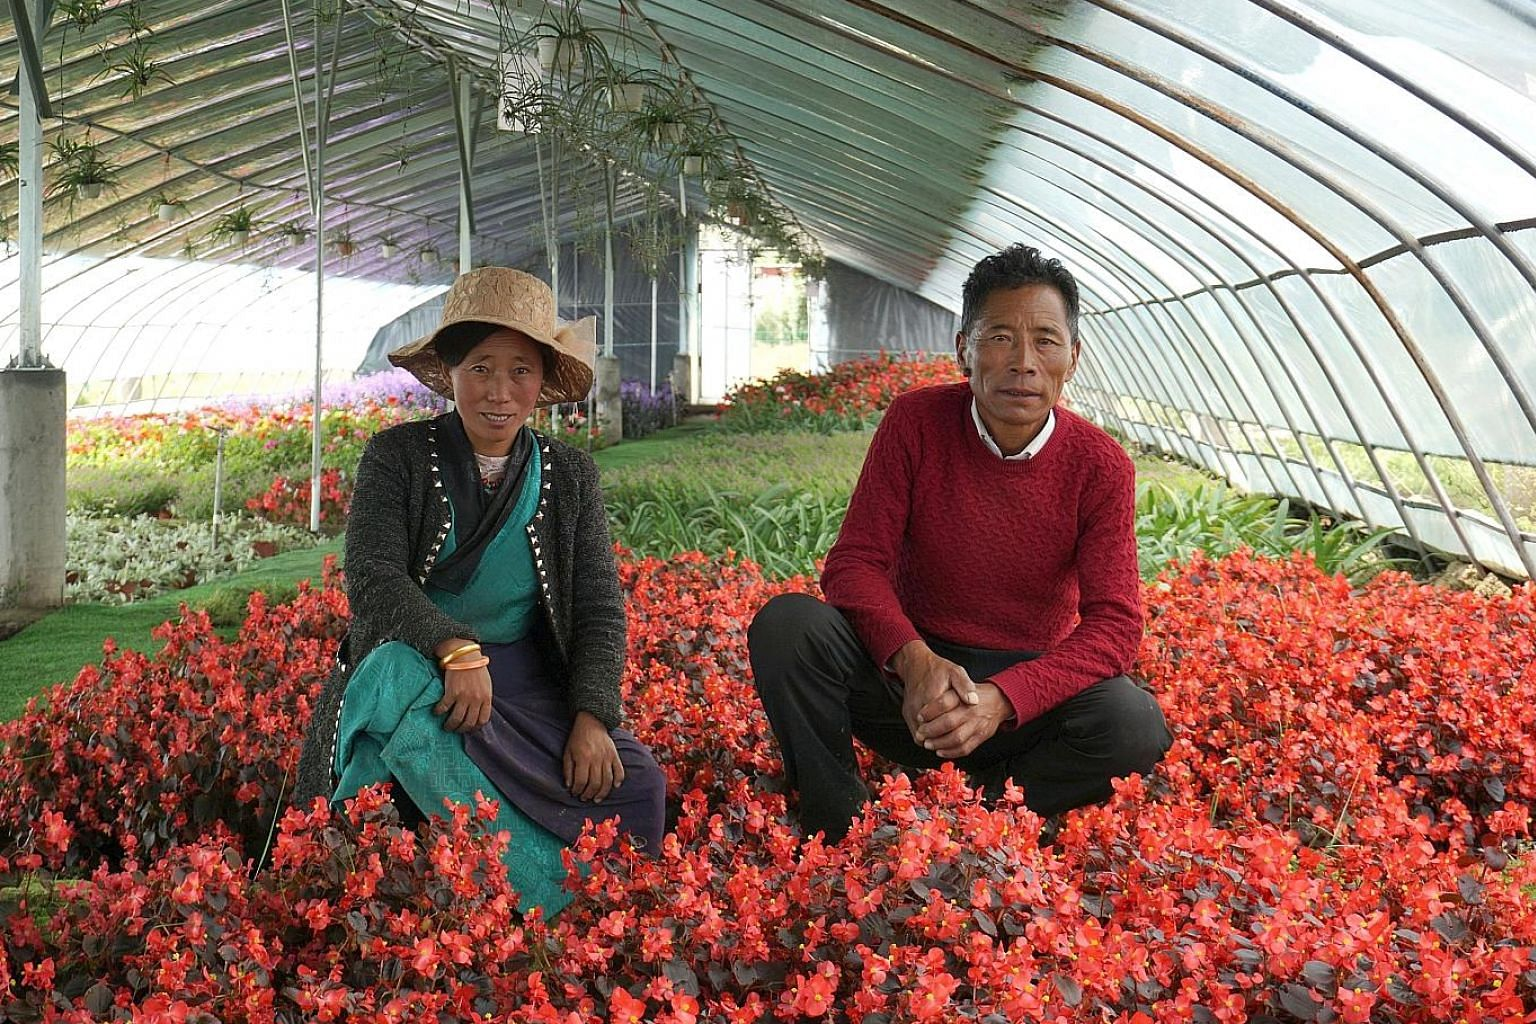 Farmers Lamo Yozhong (left), 33, and Tanzing Laju, 49, in a greenhouse where they work in Qonggyai county. The project is an investment by the local government aimed at paying 3,000 yuan a year to each of the 120 villagers.